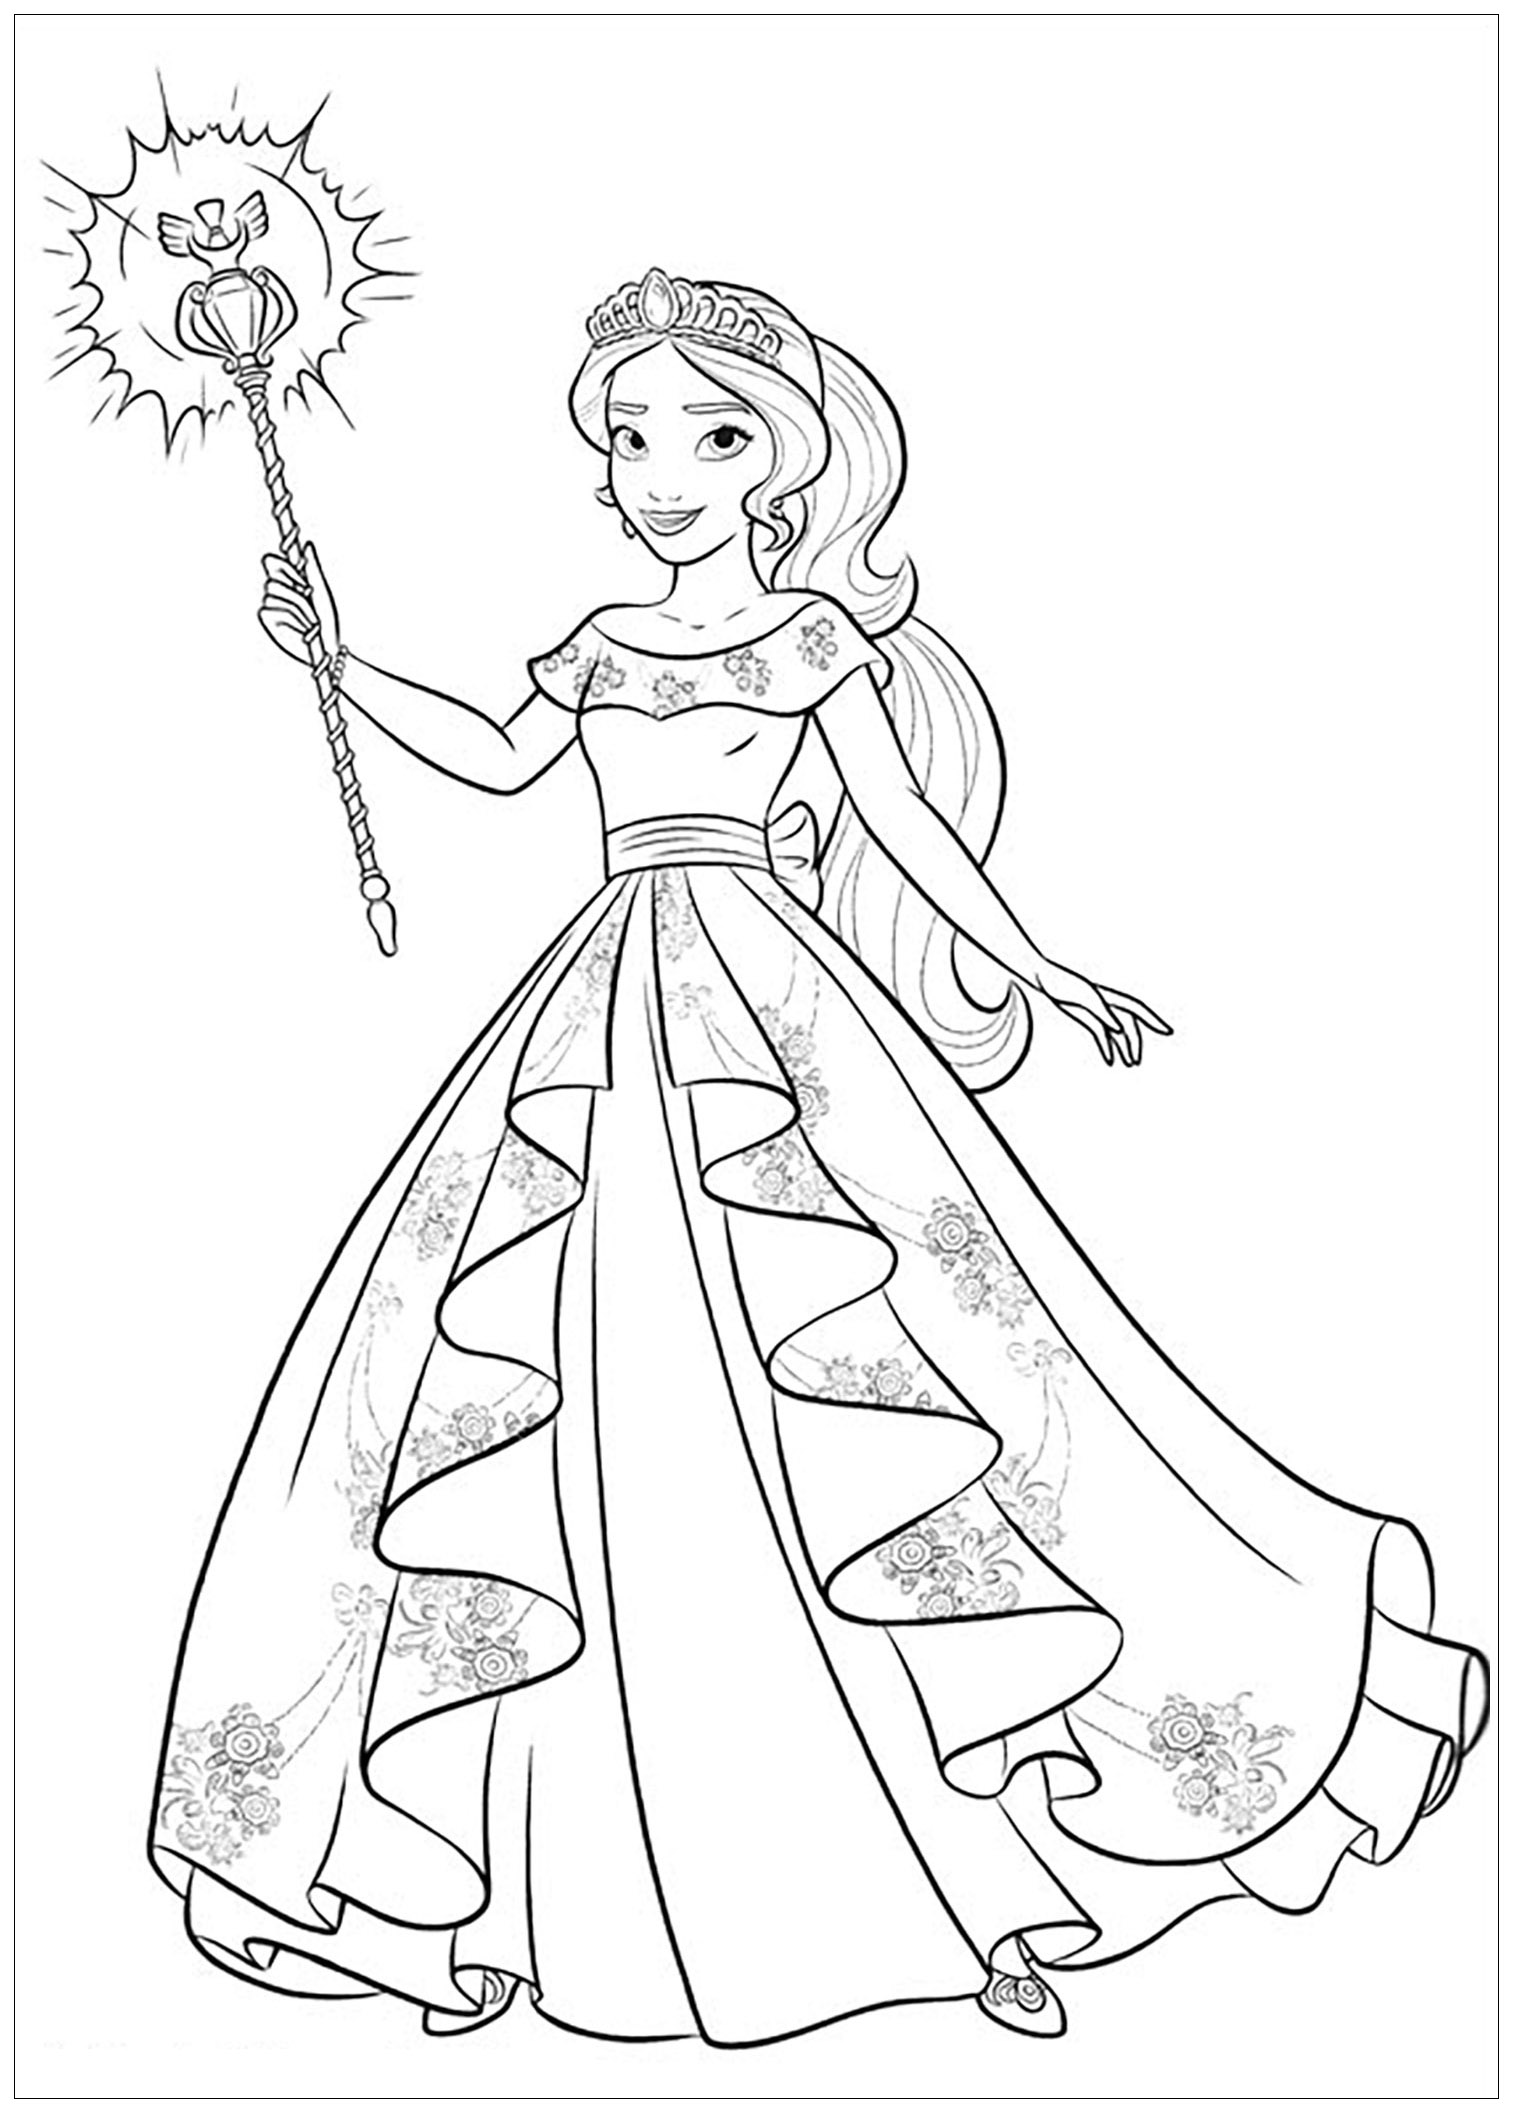 The Best Free Elena Coloring Page Images Download From 104 Free